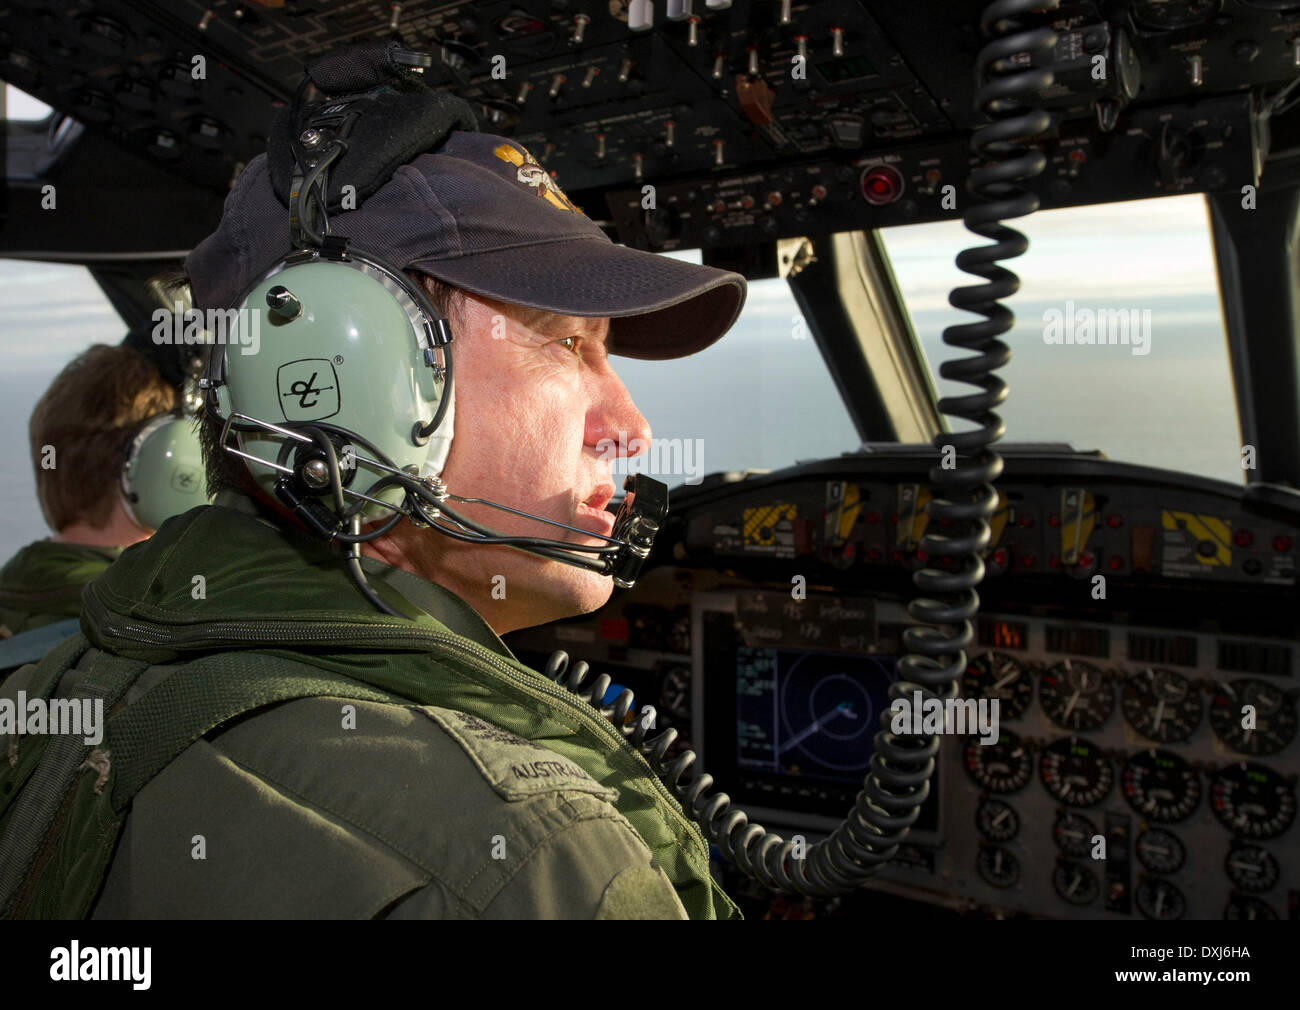 Canberra. 24th Mar, 2014. Royal Australian Air Force Warrant Officer Ron Day scans the ocean from the flight deck of an AP-3C Orion over the south Indian Ocean as part of the Australian Maritime Safety Authoirty-led search for Malaysia Airlines flight MH370 on March 24, 2014. © Australian Department of Defence/Xinhua/Alamy Live News - Stock Image